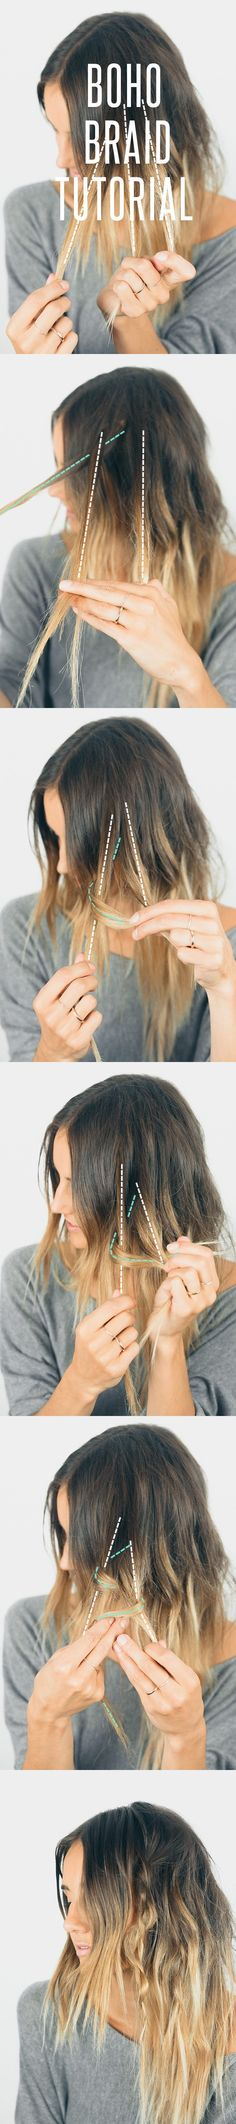 HAIR - BOHO BRAID TUTORIAL If you liked this pin, click now for more details. Boho Hairstyles, Pretty Hairstyles, Pirate Hairstyles, Hairstyle Ideas, Wedding Hairstyles, Hairstyles Pictures, Hairstyle Tutorials, Hairstyles Haircuts, Corte Y Color